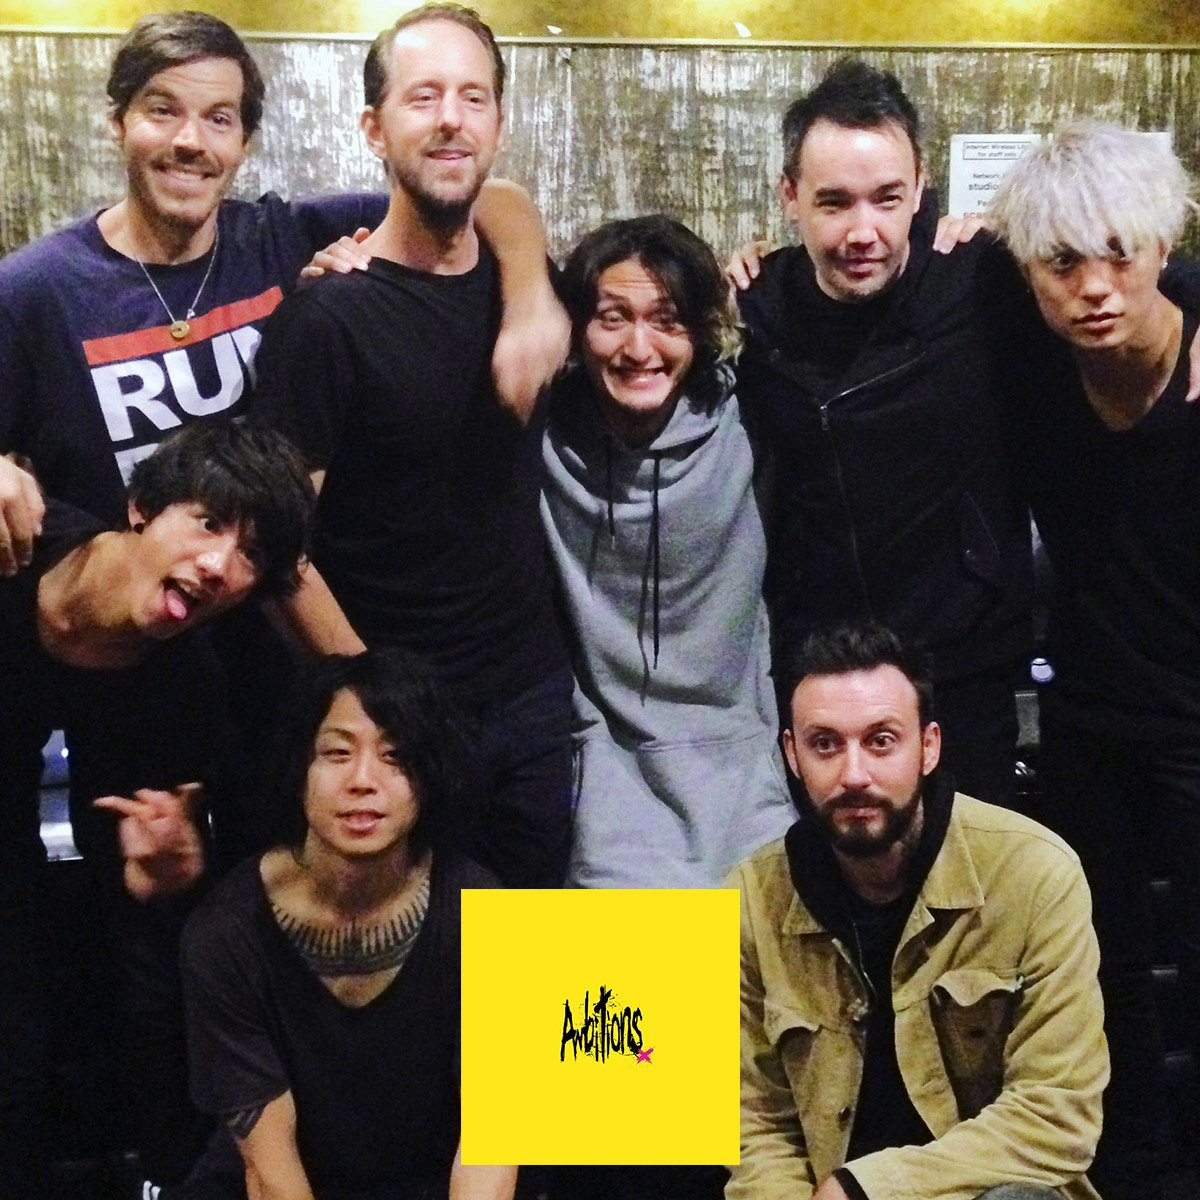 Our friends @ONEOKROCK_japan will be releasing their new album #Ambitions on 1/13! https://t.co/9IZEXMcM3Q https://t.co/oOvJOsgdOy